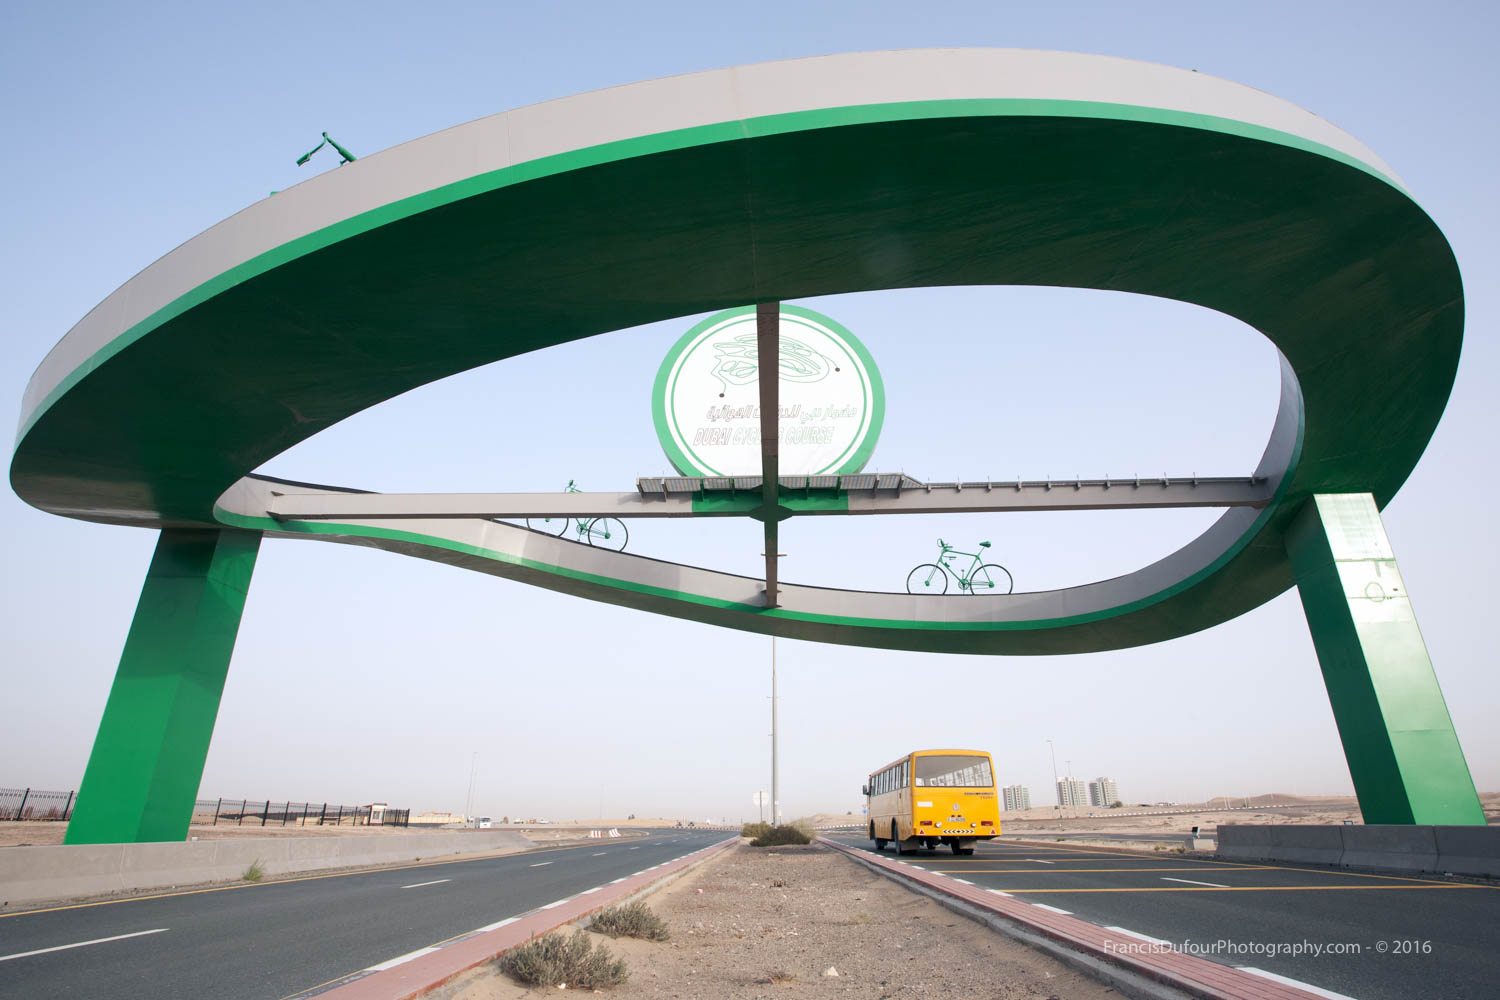 The Gate to Dubai Cycling Course (United Arab Emirates)